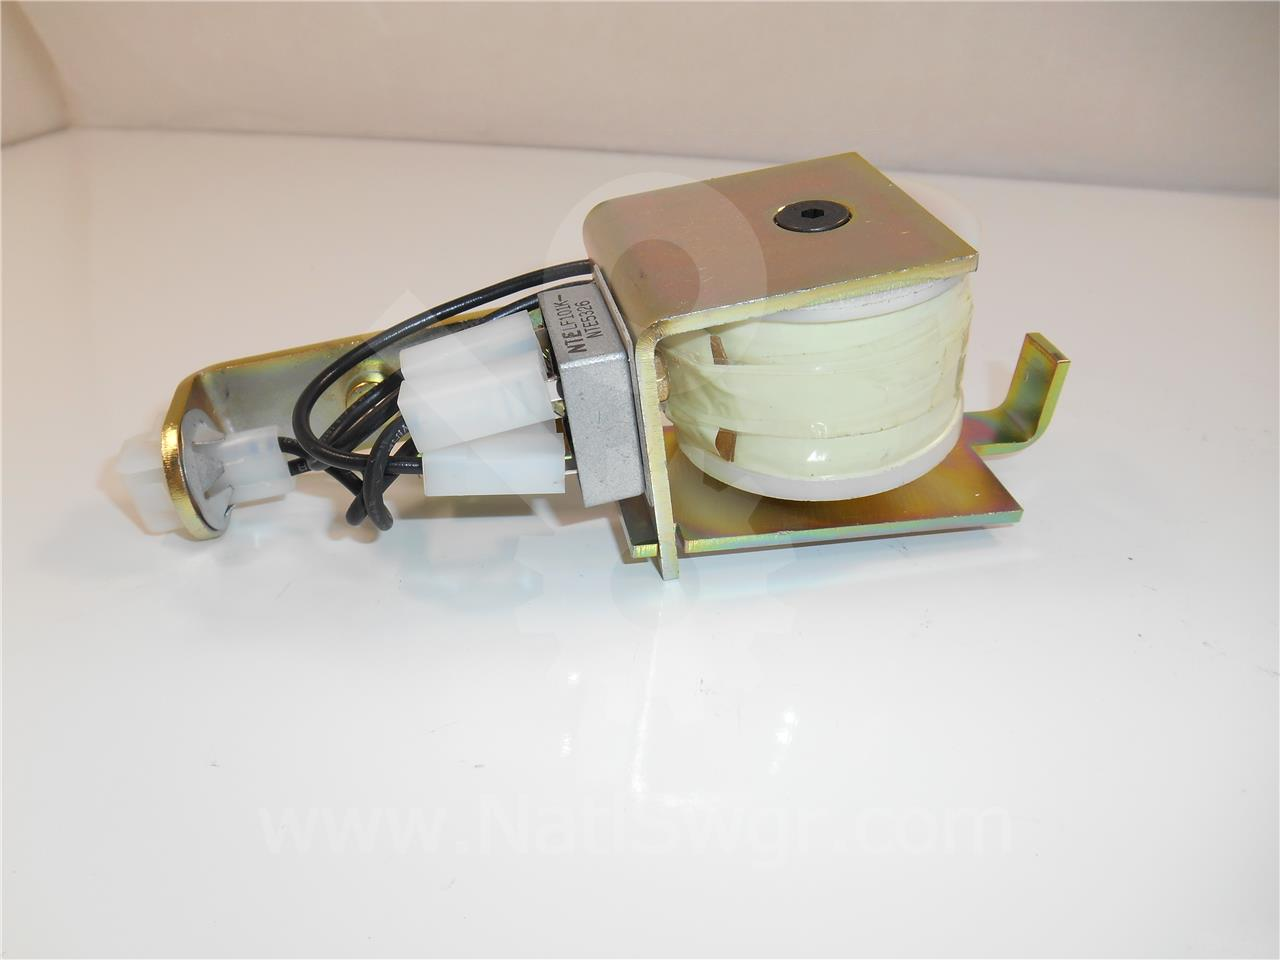 18-820-331-505 Siemens / Allis Chalmers 120VAC CLOSE COIL ASSEMBLY FOR GMI